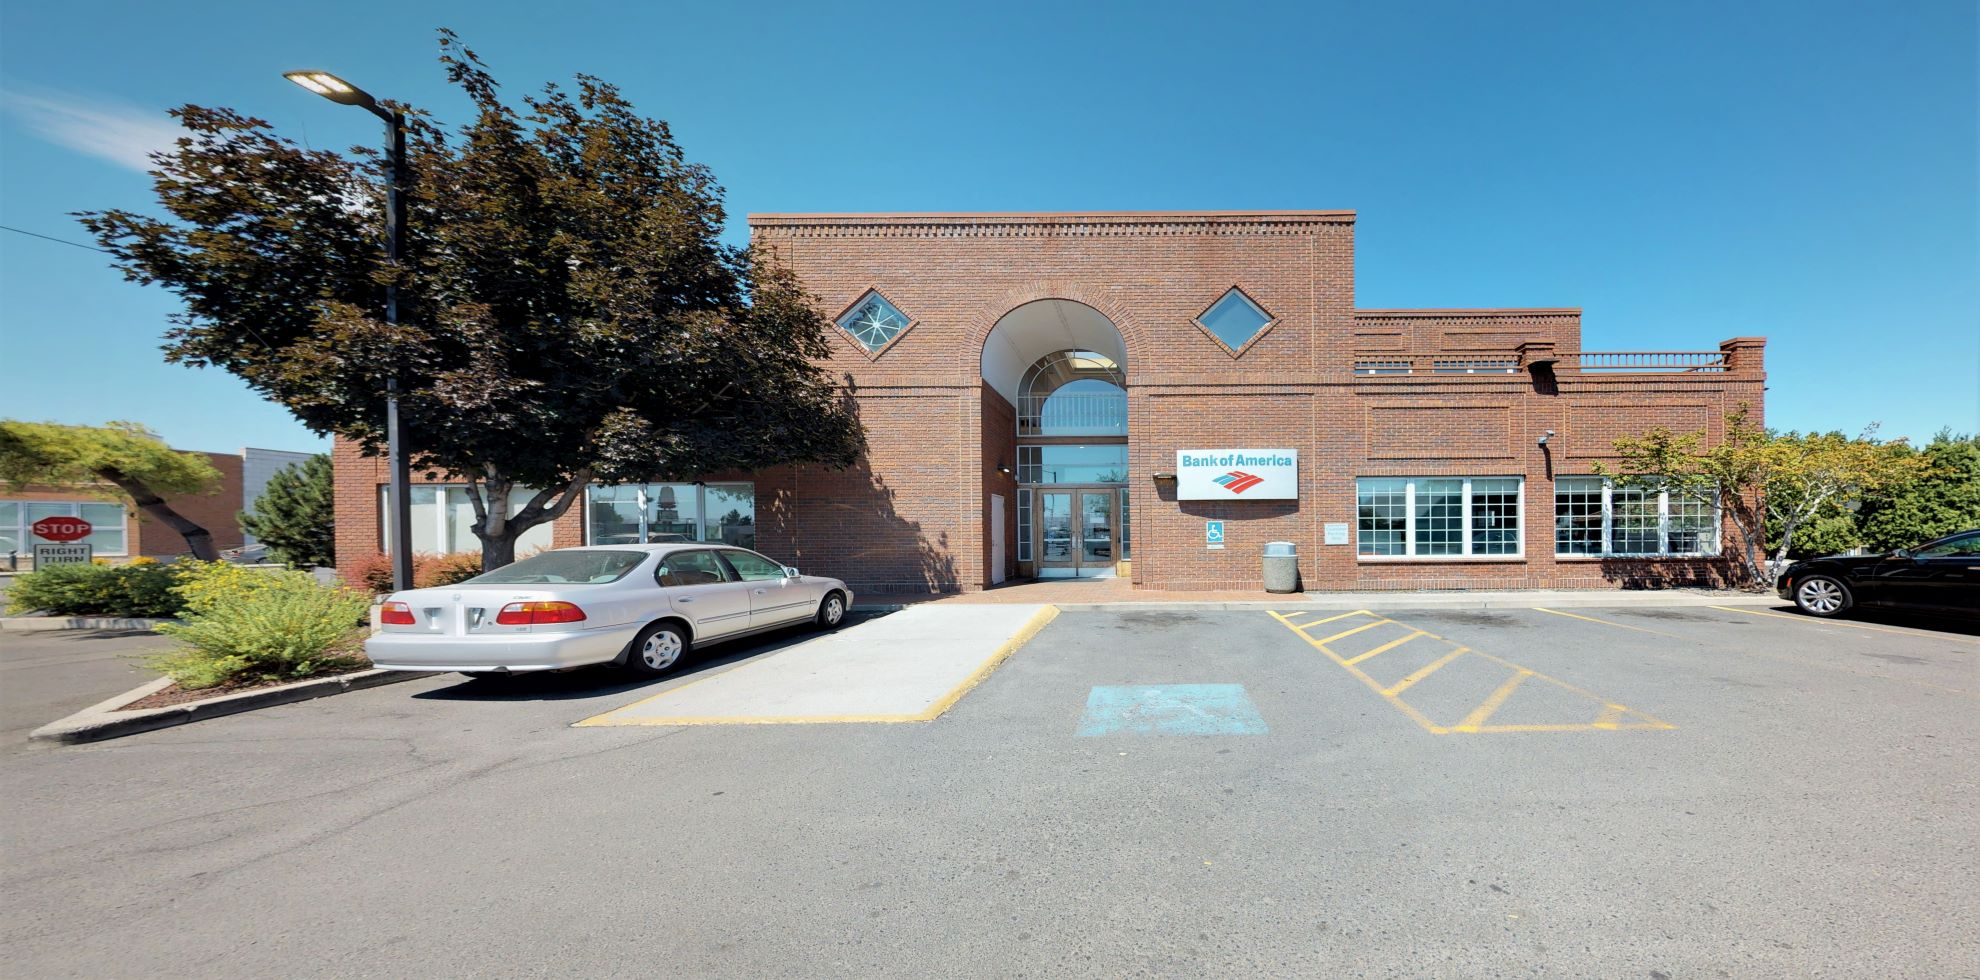 Bank of America financial center with drive-thru ATM and teller | 201 N 40th Ave, Yakima, WA 98908